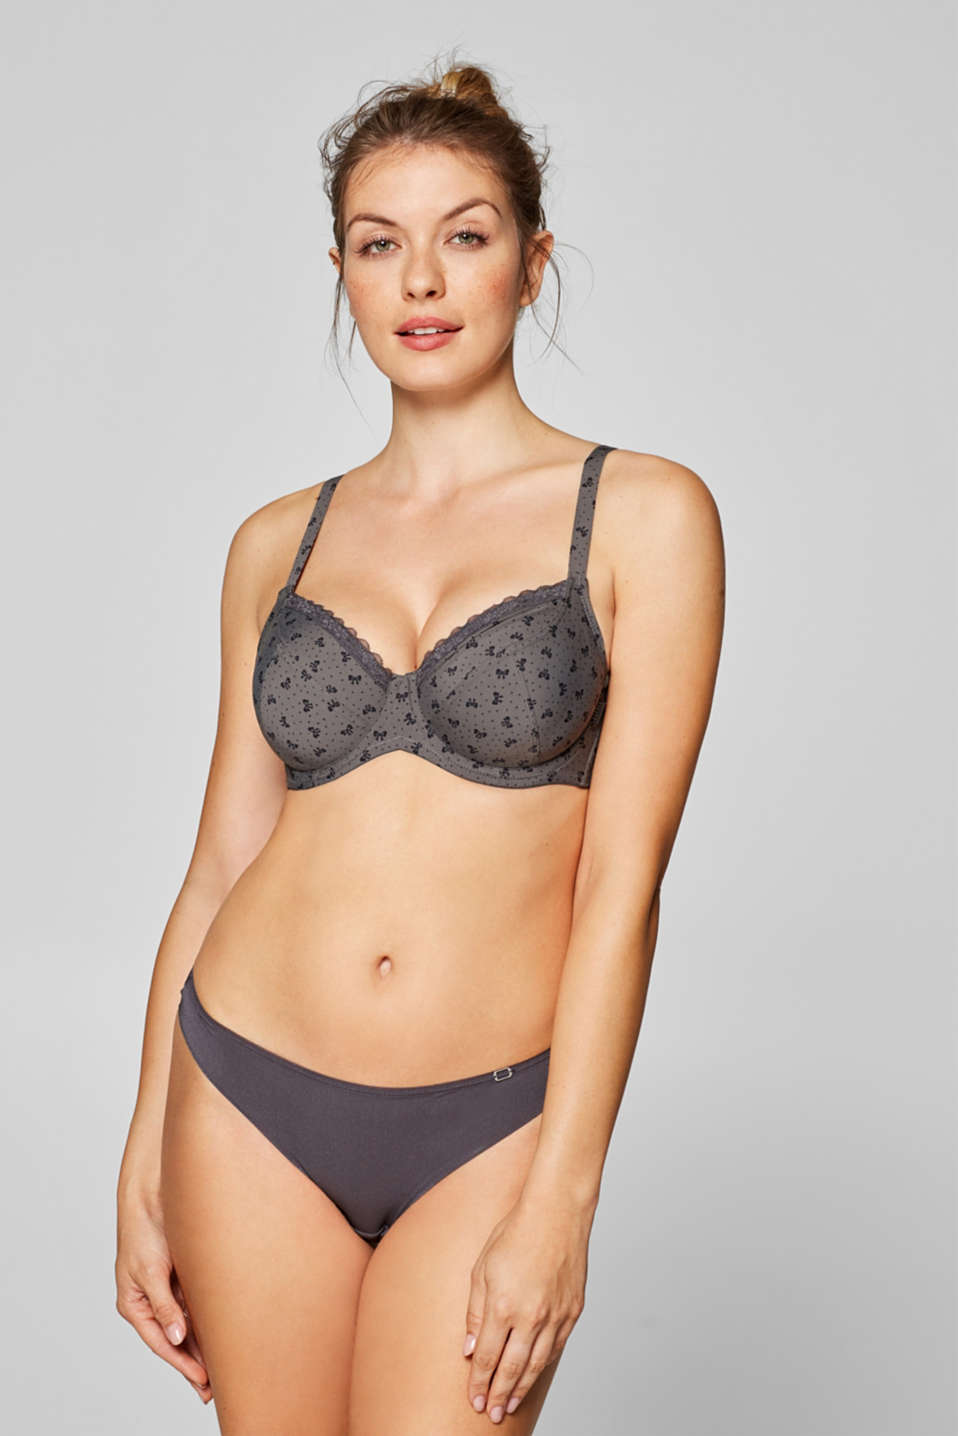 Esprit - Unpadded underwire bra for larger cup sizes